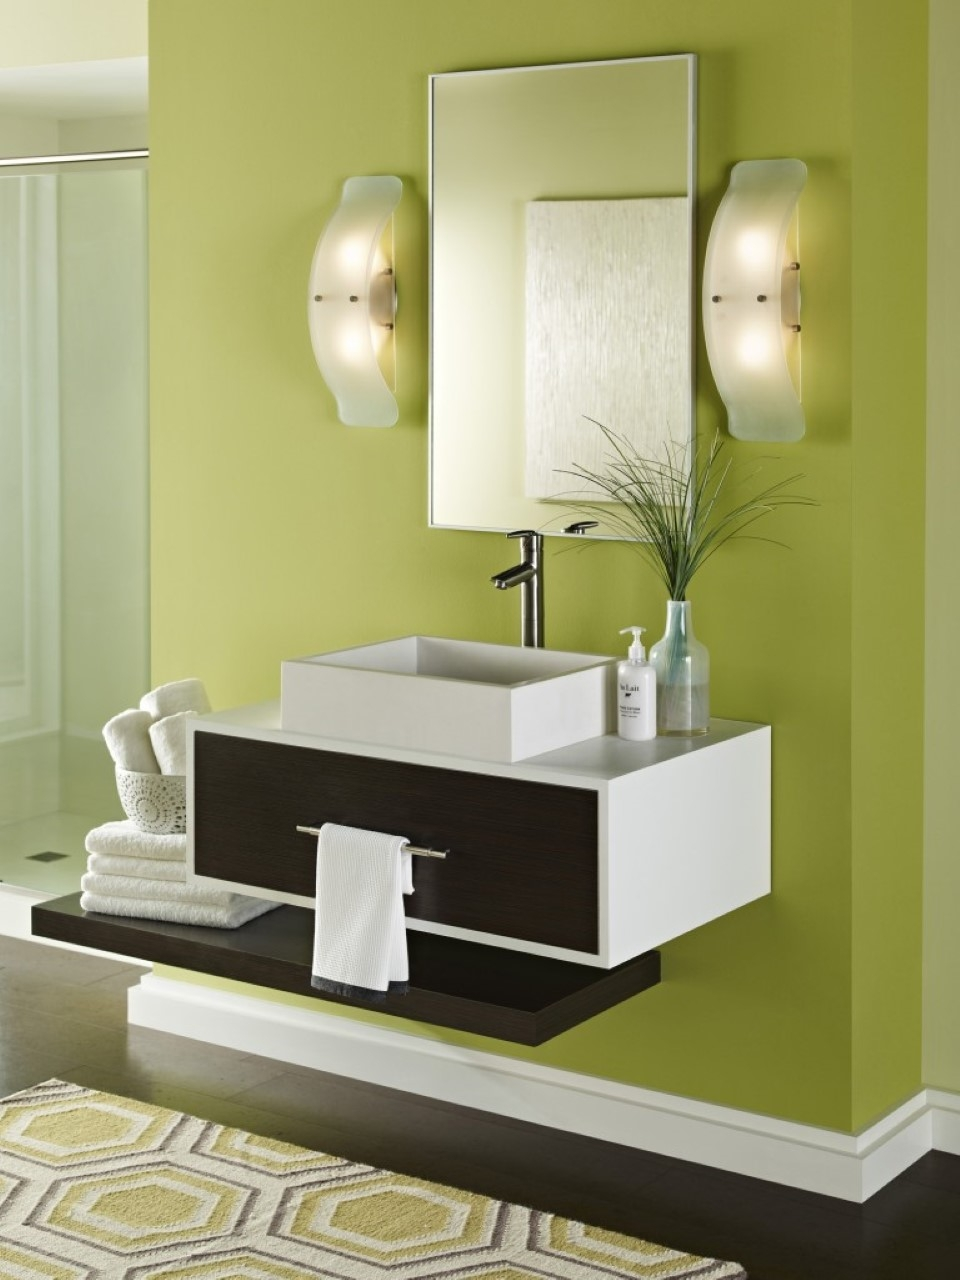 Wayfair Bathroom Vanity >> 15 Best Ideas Funky Bathroom Mirror | Mirror Ideas